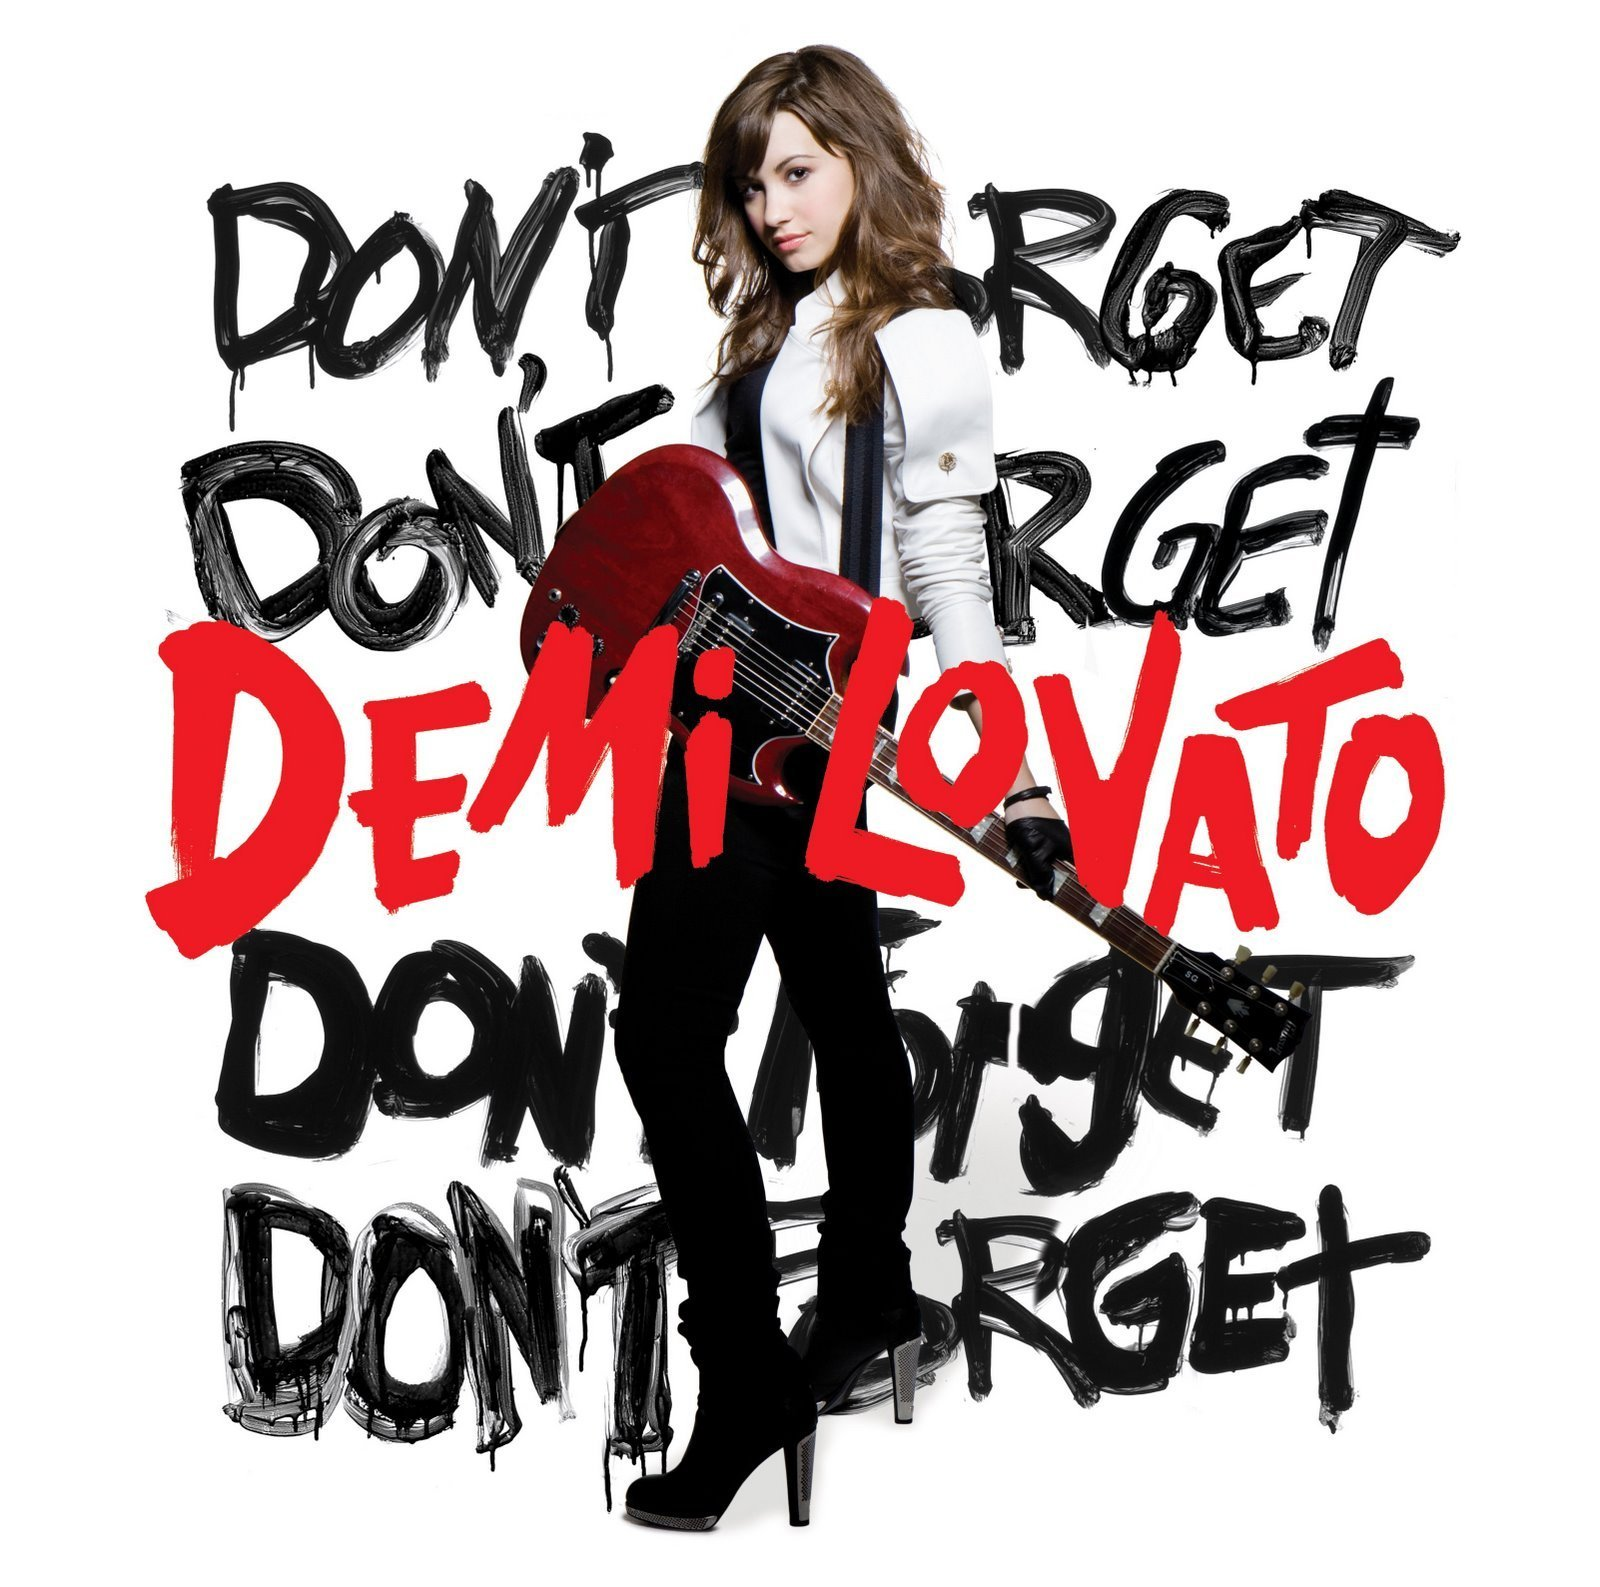 http://1.bp.blogspot.com/-QwphQptqPWs/UMIKxkZUIBI/AAAAAAAAAFg/mG--So2C3W0/s1600/Don-t-Forget-Japanese-Edition-Official-Album-Cover-dont-forget-demi-lovato-album-14871037-1600-1587.jpg